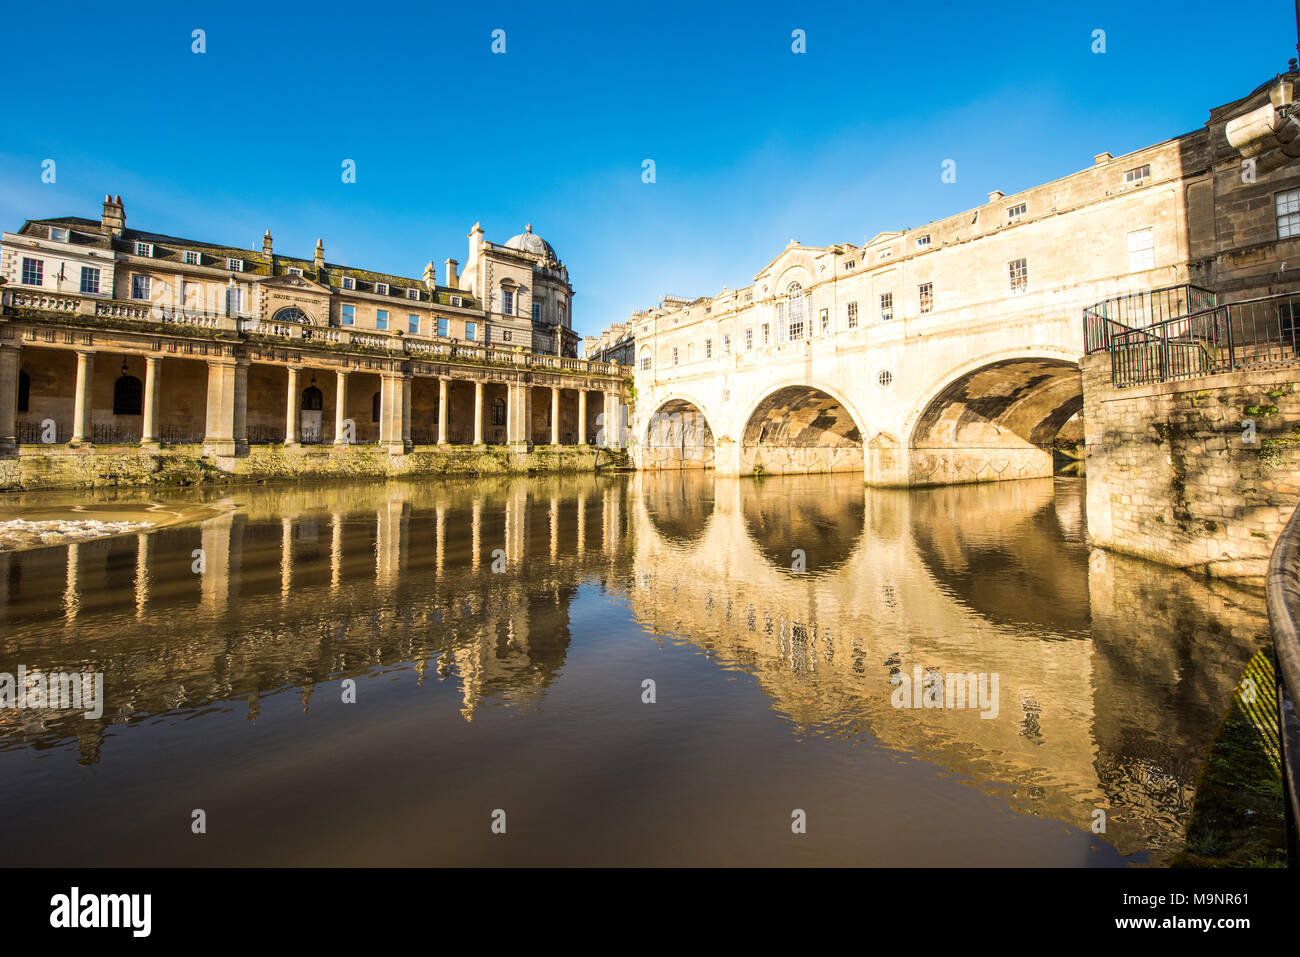 Historic Pulteney Bridge's three arches and the Grand Parade columns reflected in the  shimmering River Avon in Bath with a beautiful clear blue sky Stock Photo